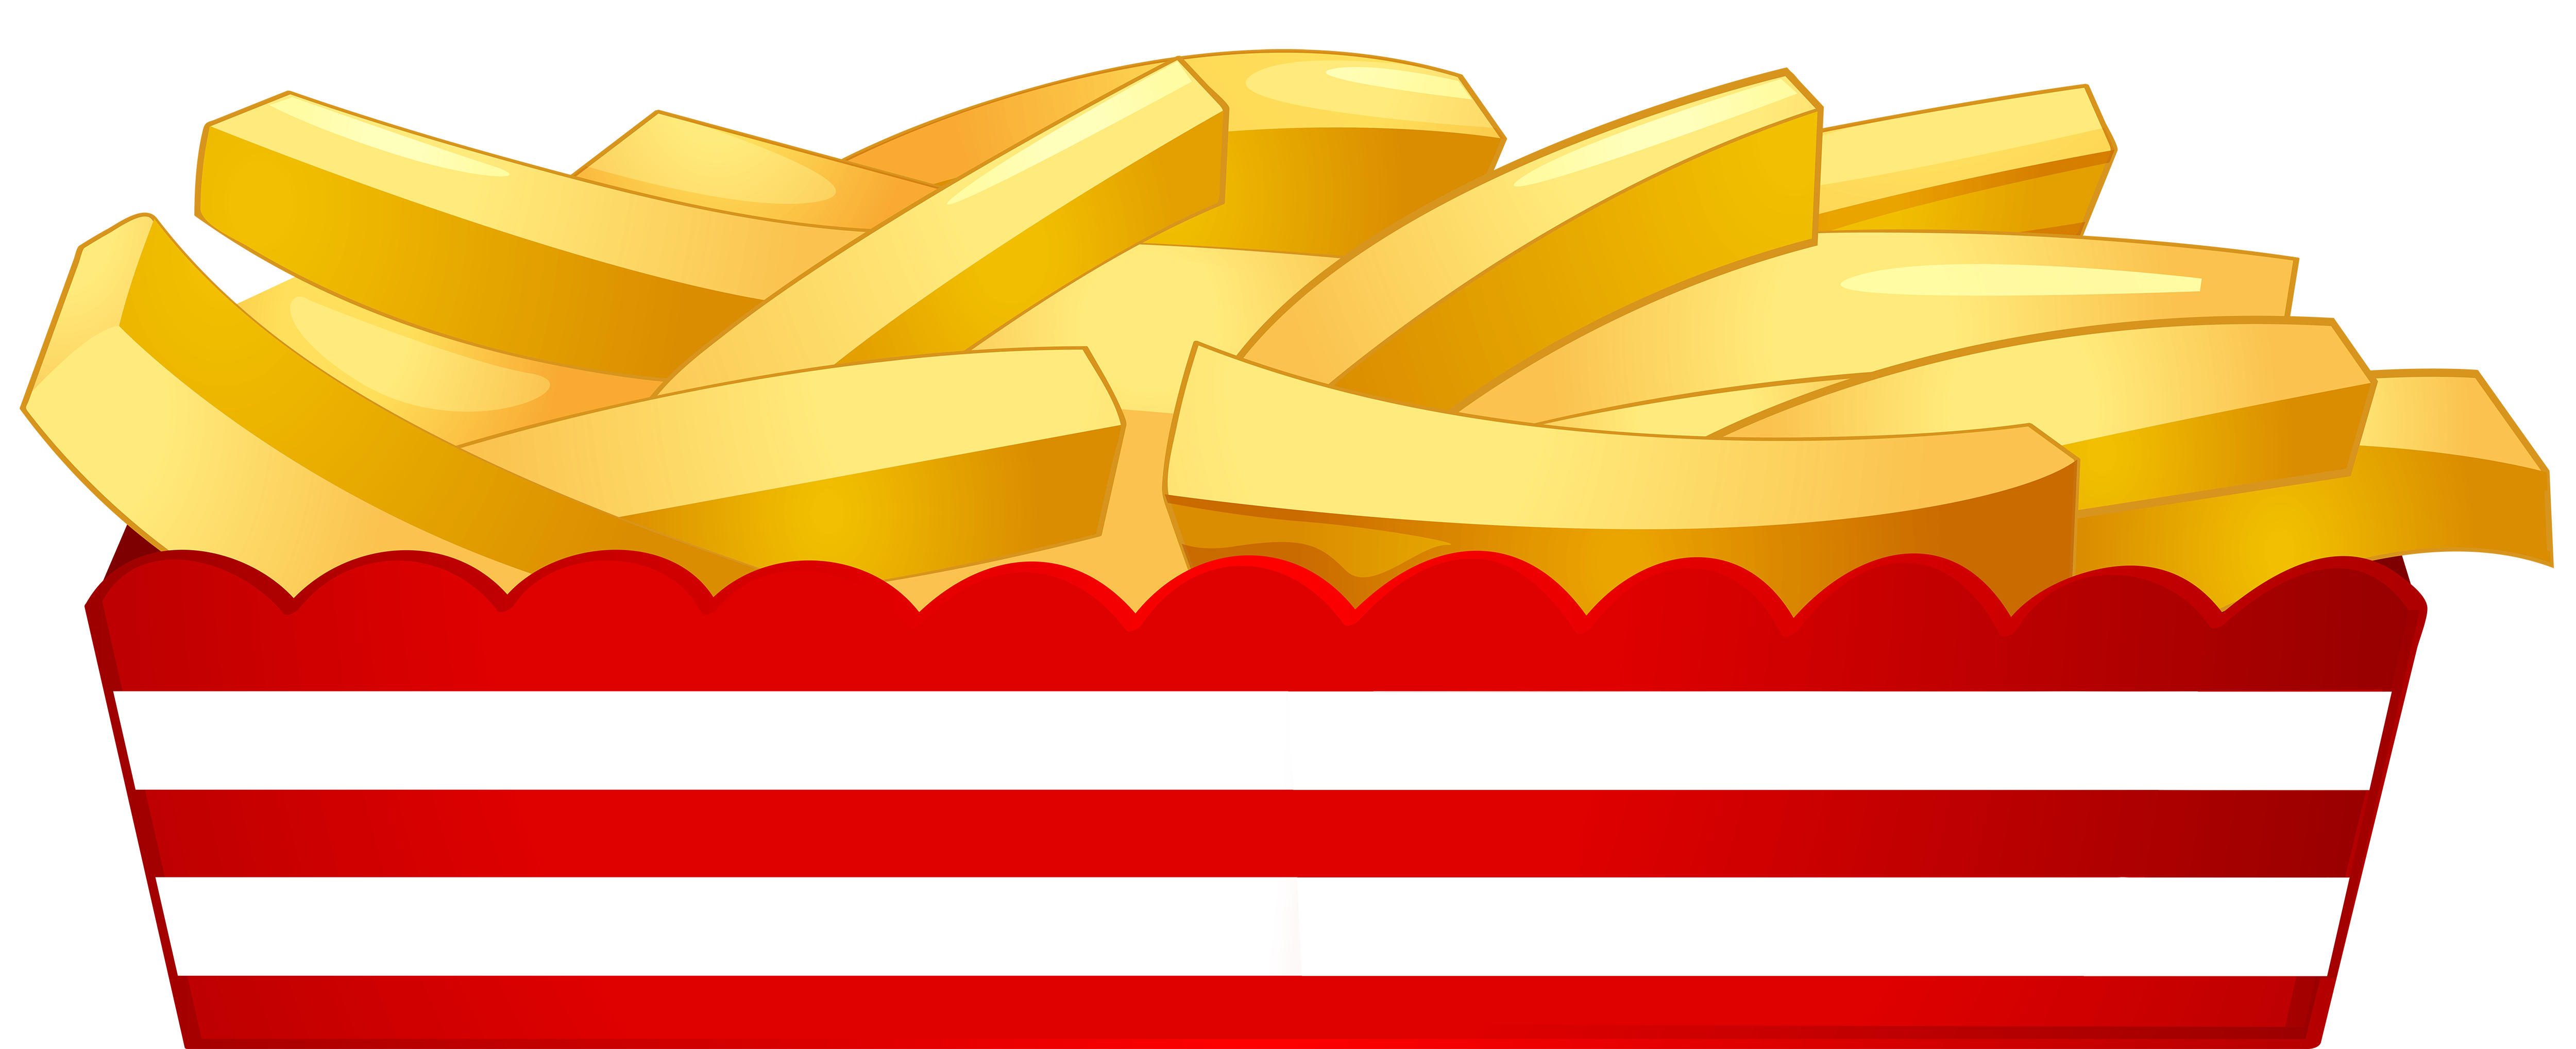 French Fries Clipart & French Fries Clip Art Images.